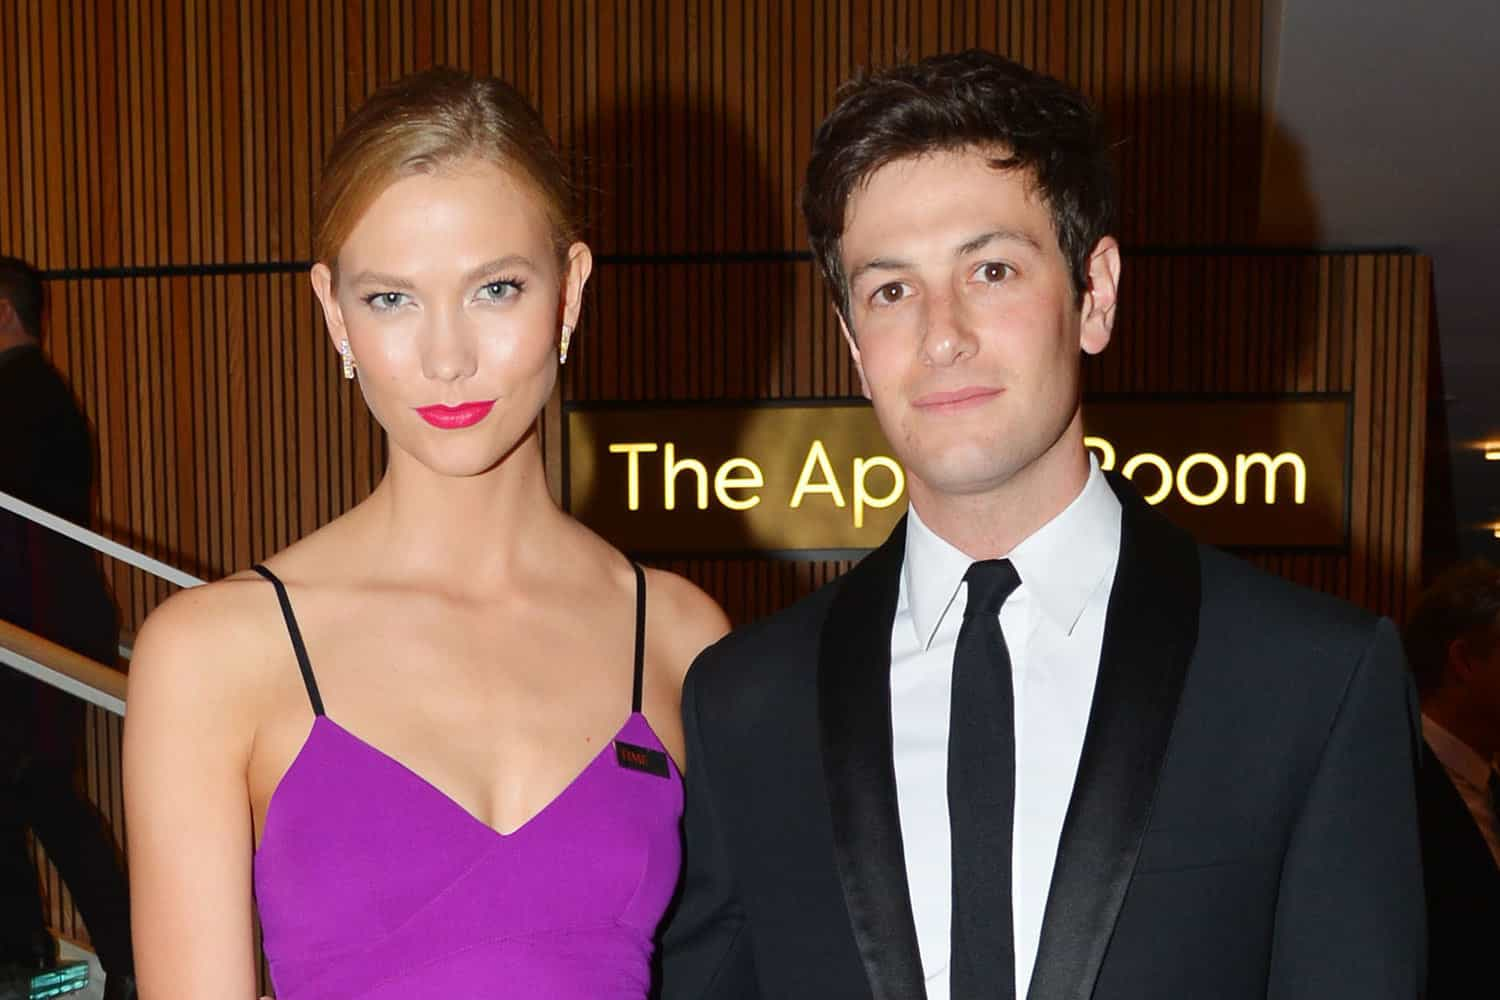 Did Karlie Kloss Just Reveal Princess Beatrice's Top-Secret Instagram?